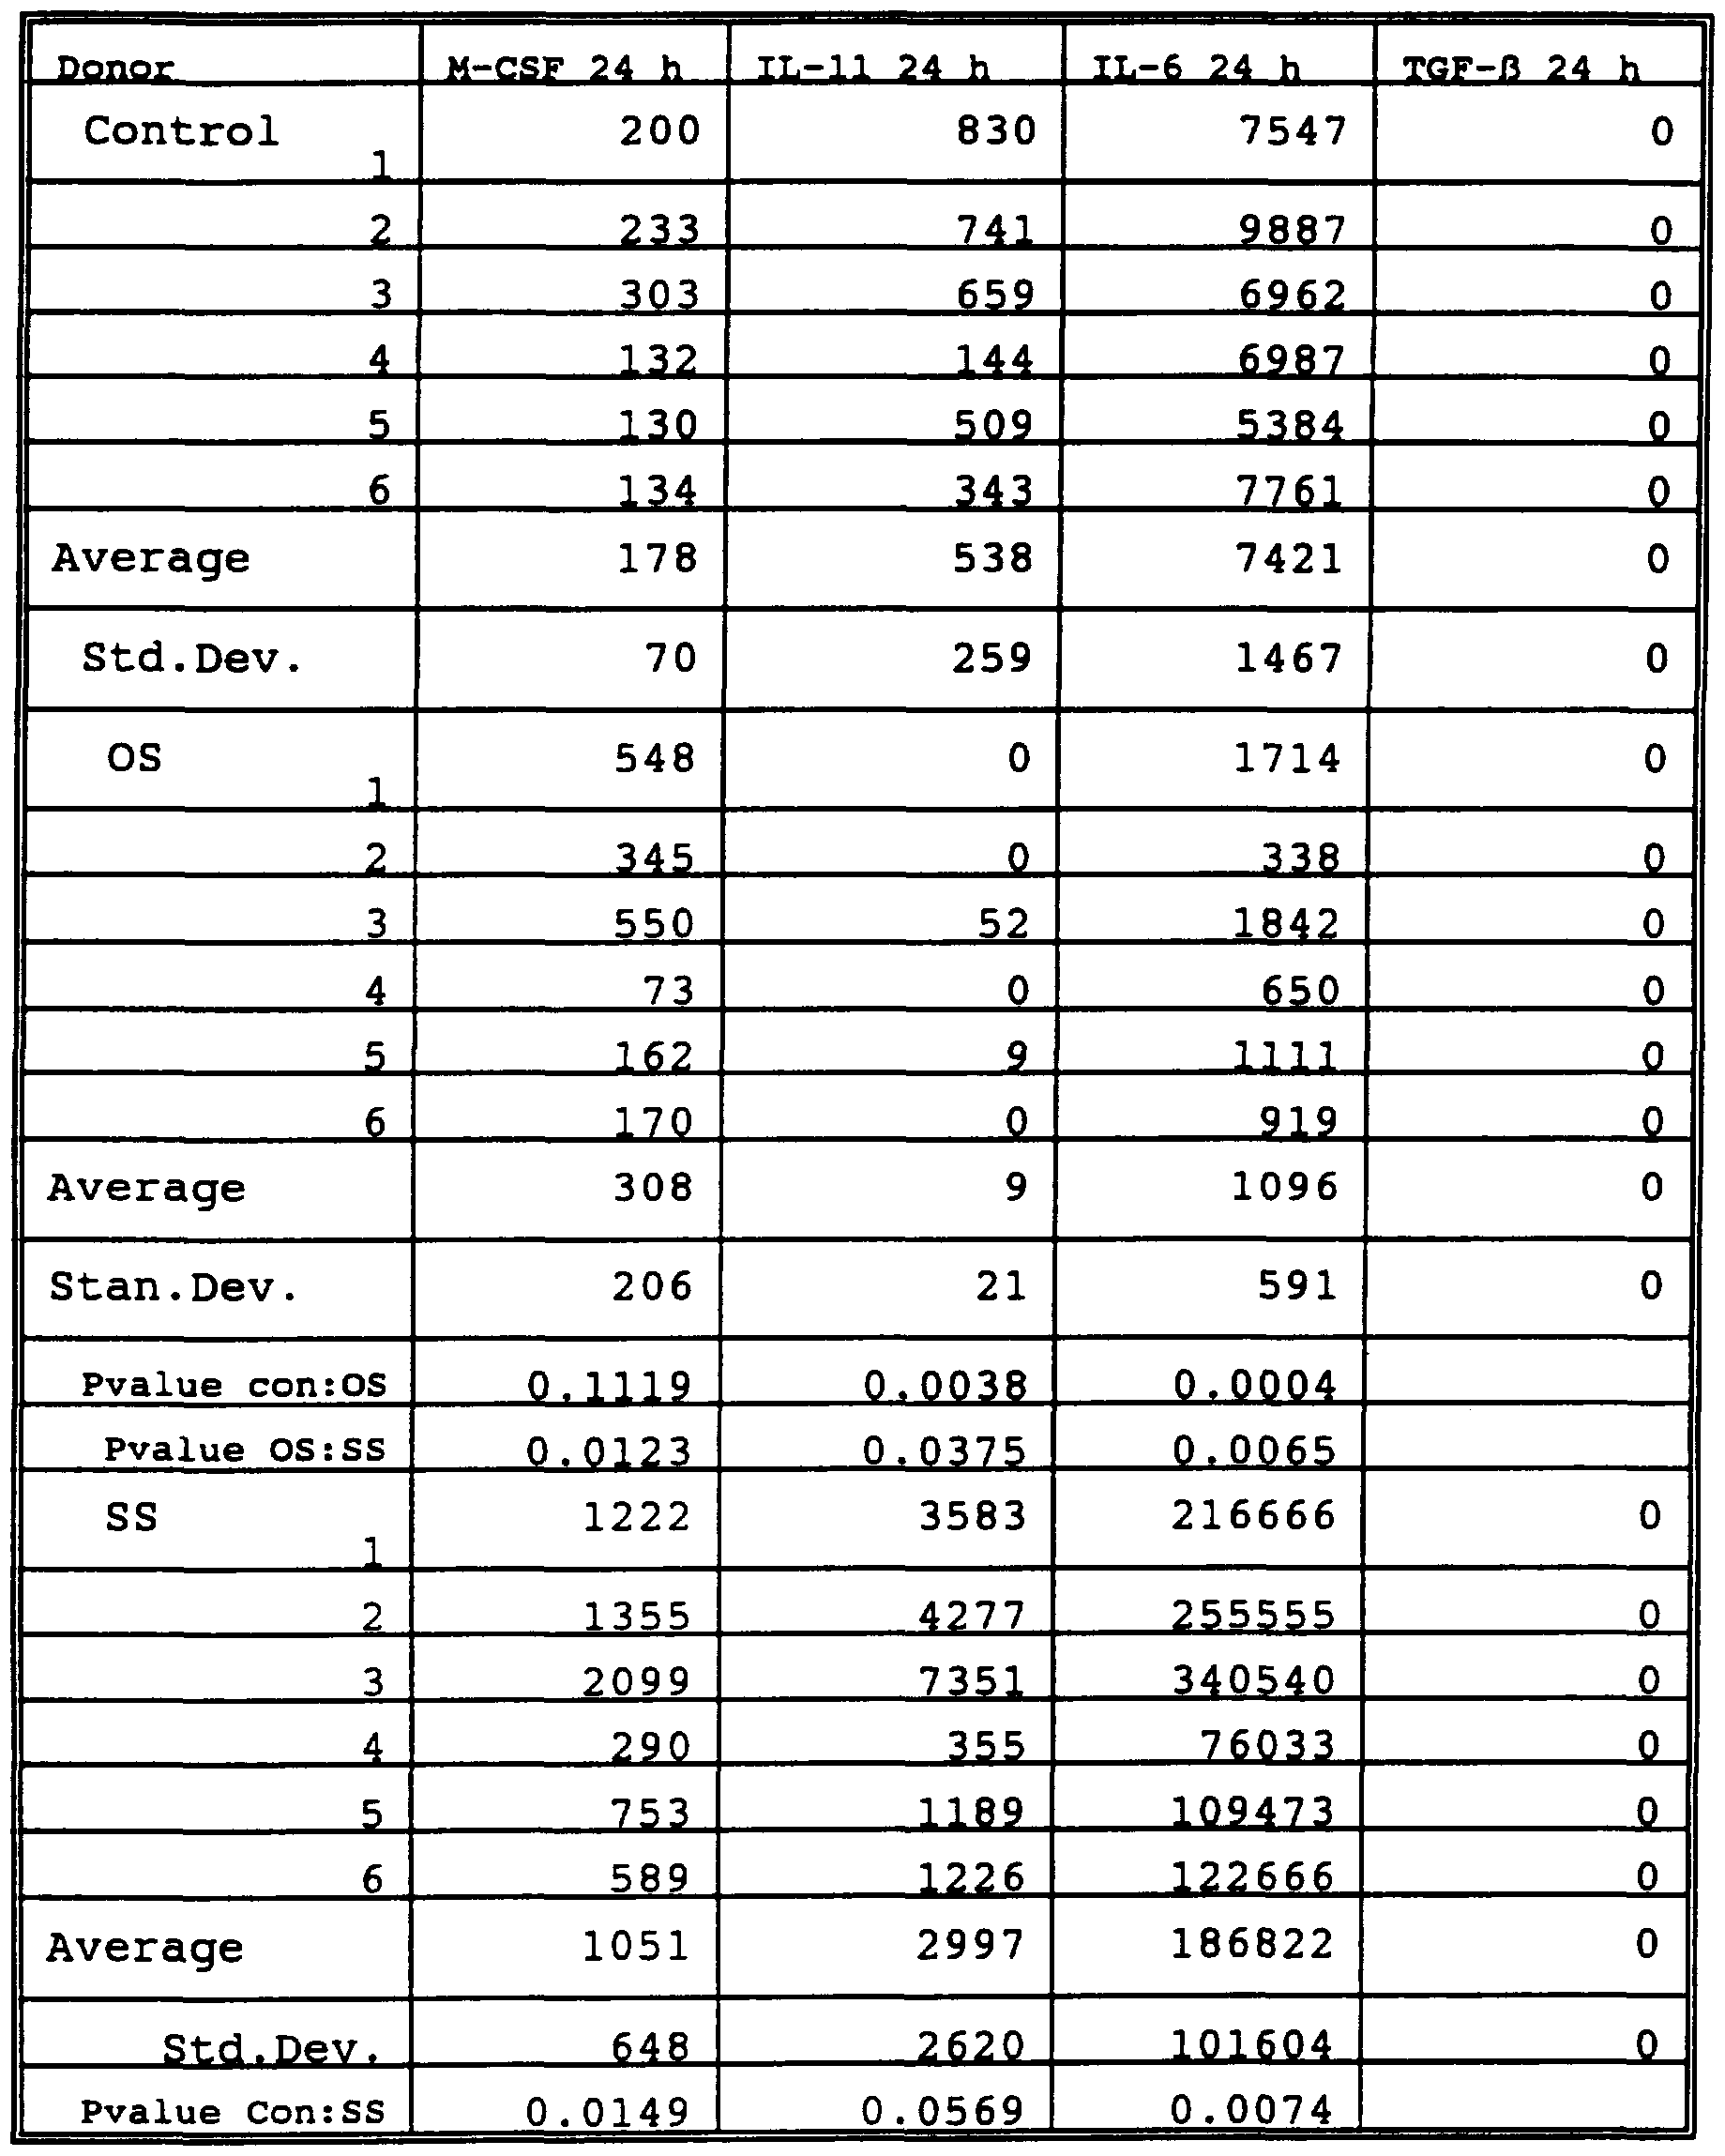 WO1996023059A1 - Lineage-directed induction of human